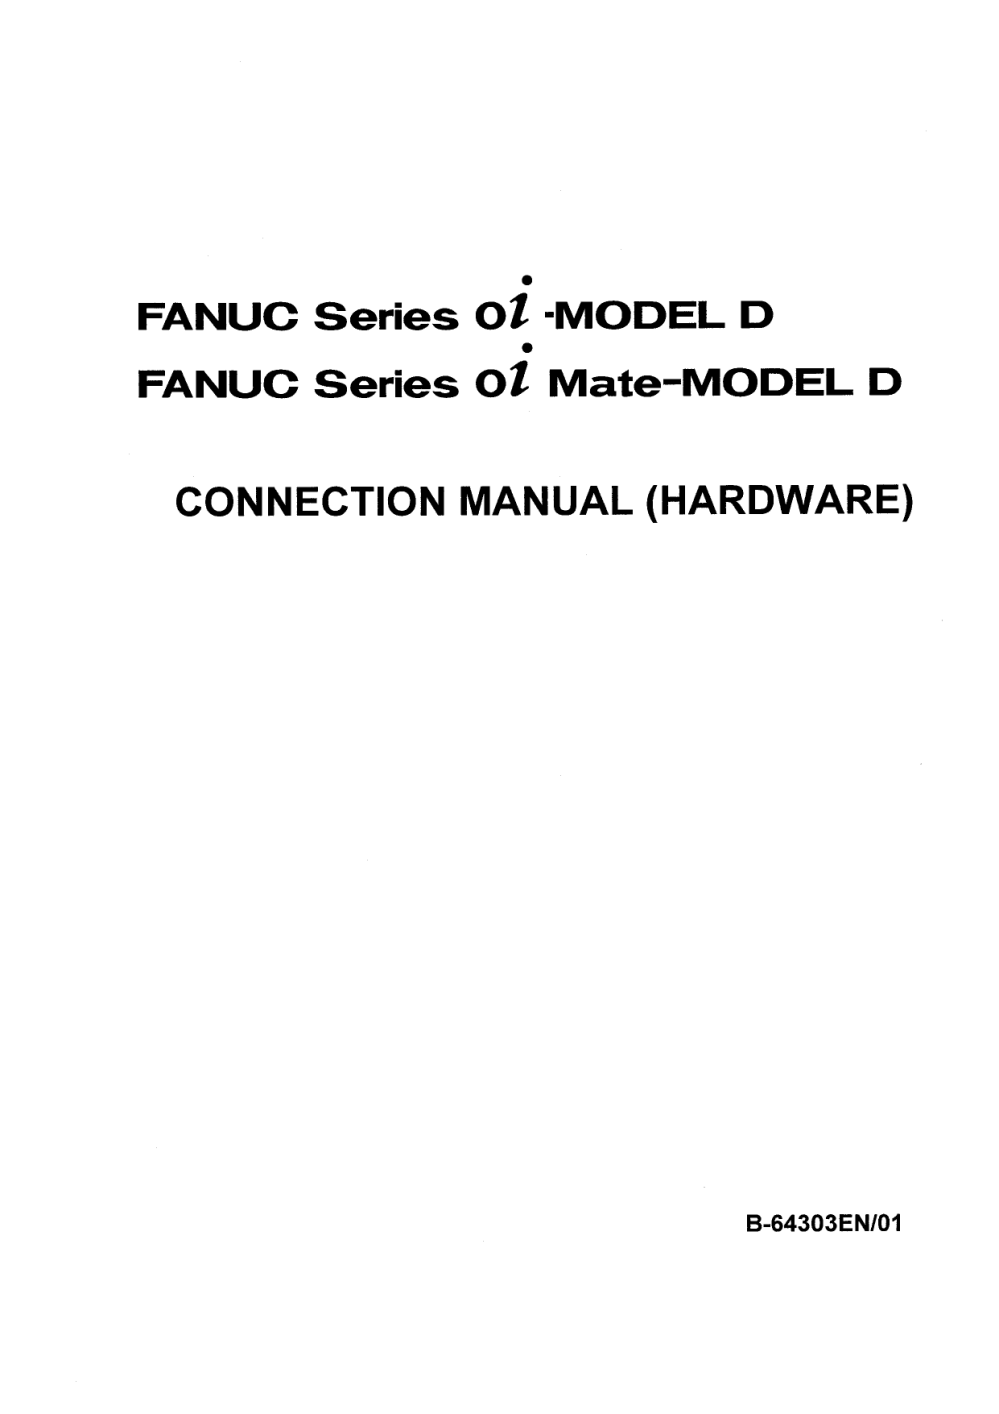 medium resolution of connection manual hardware